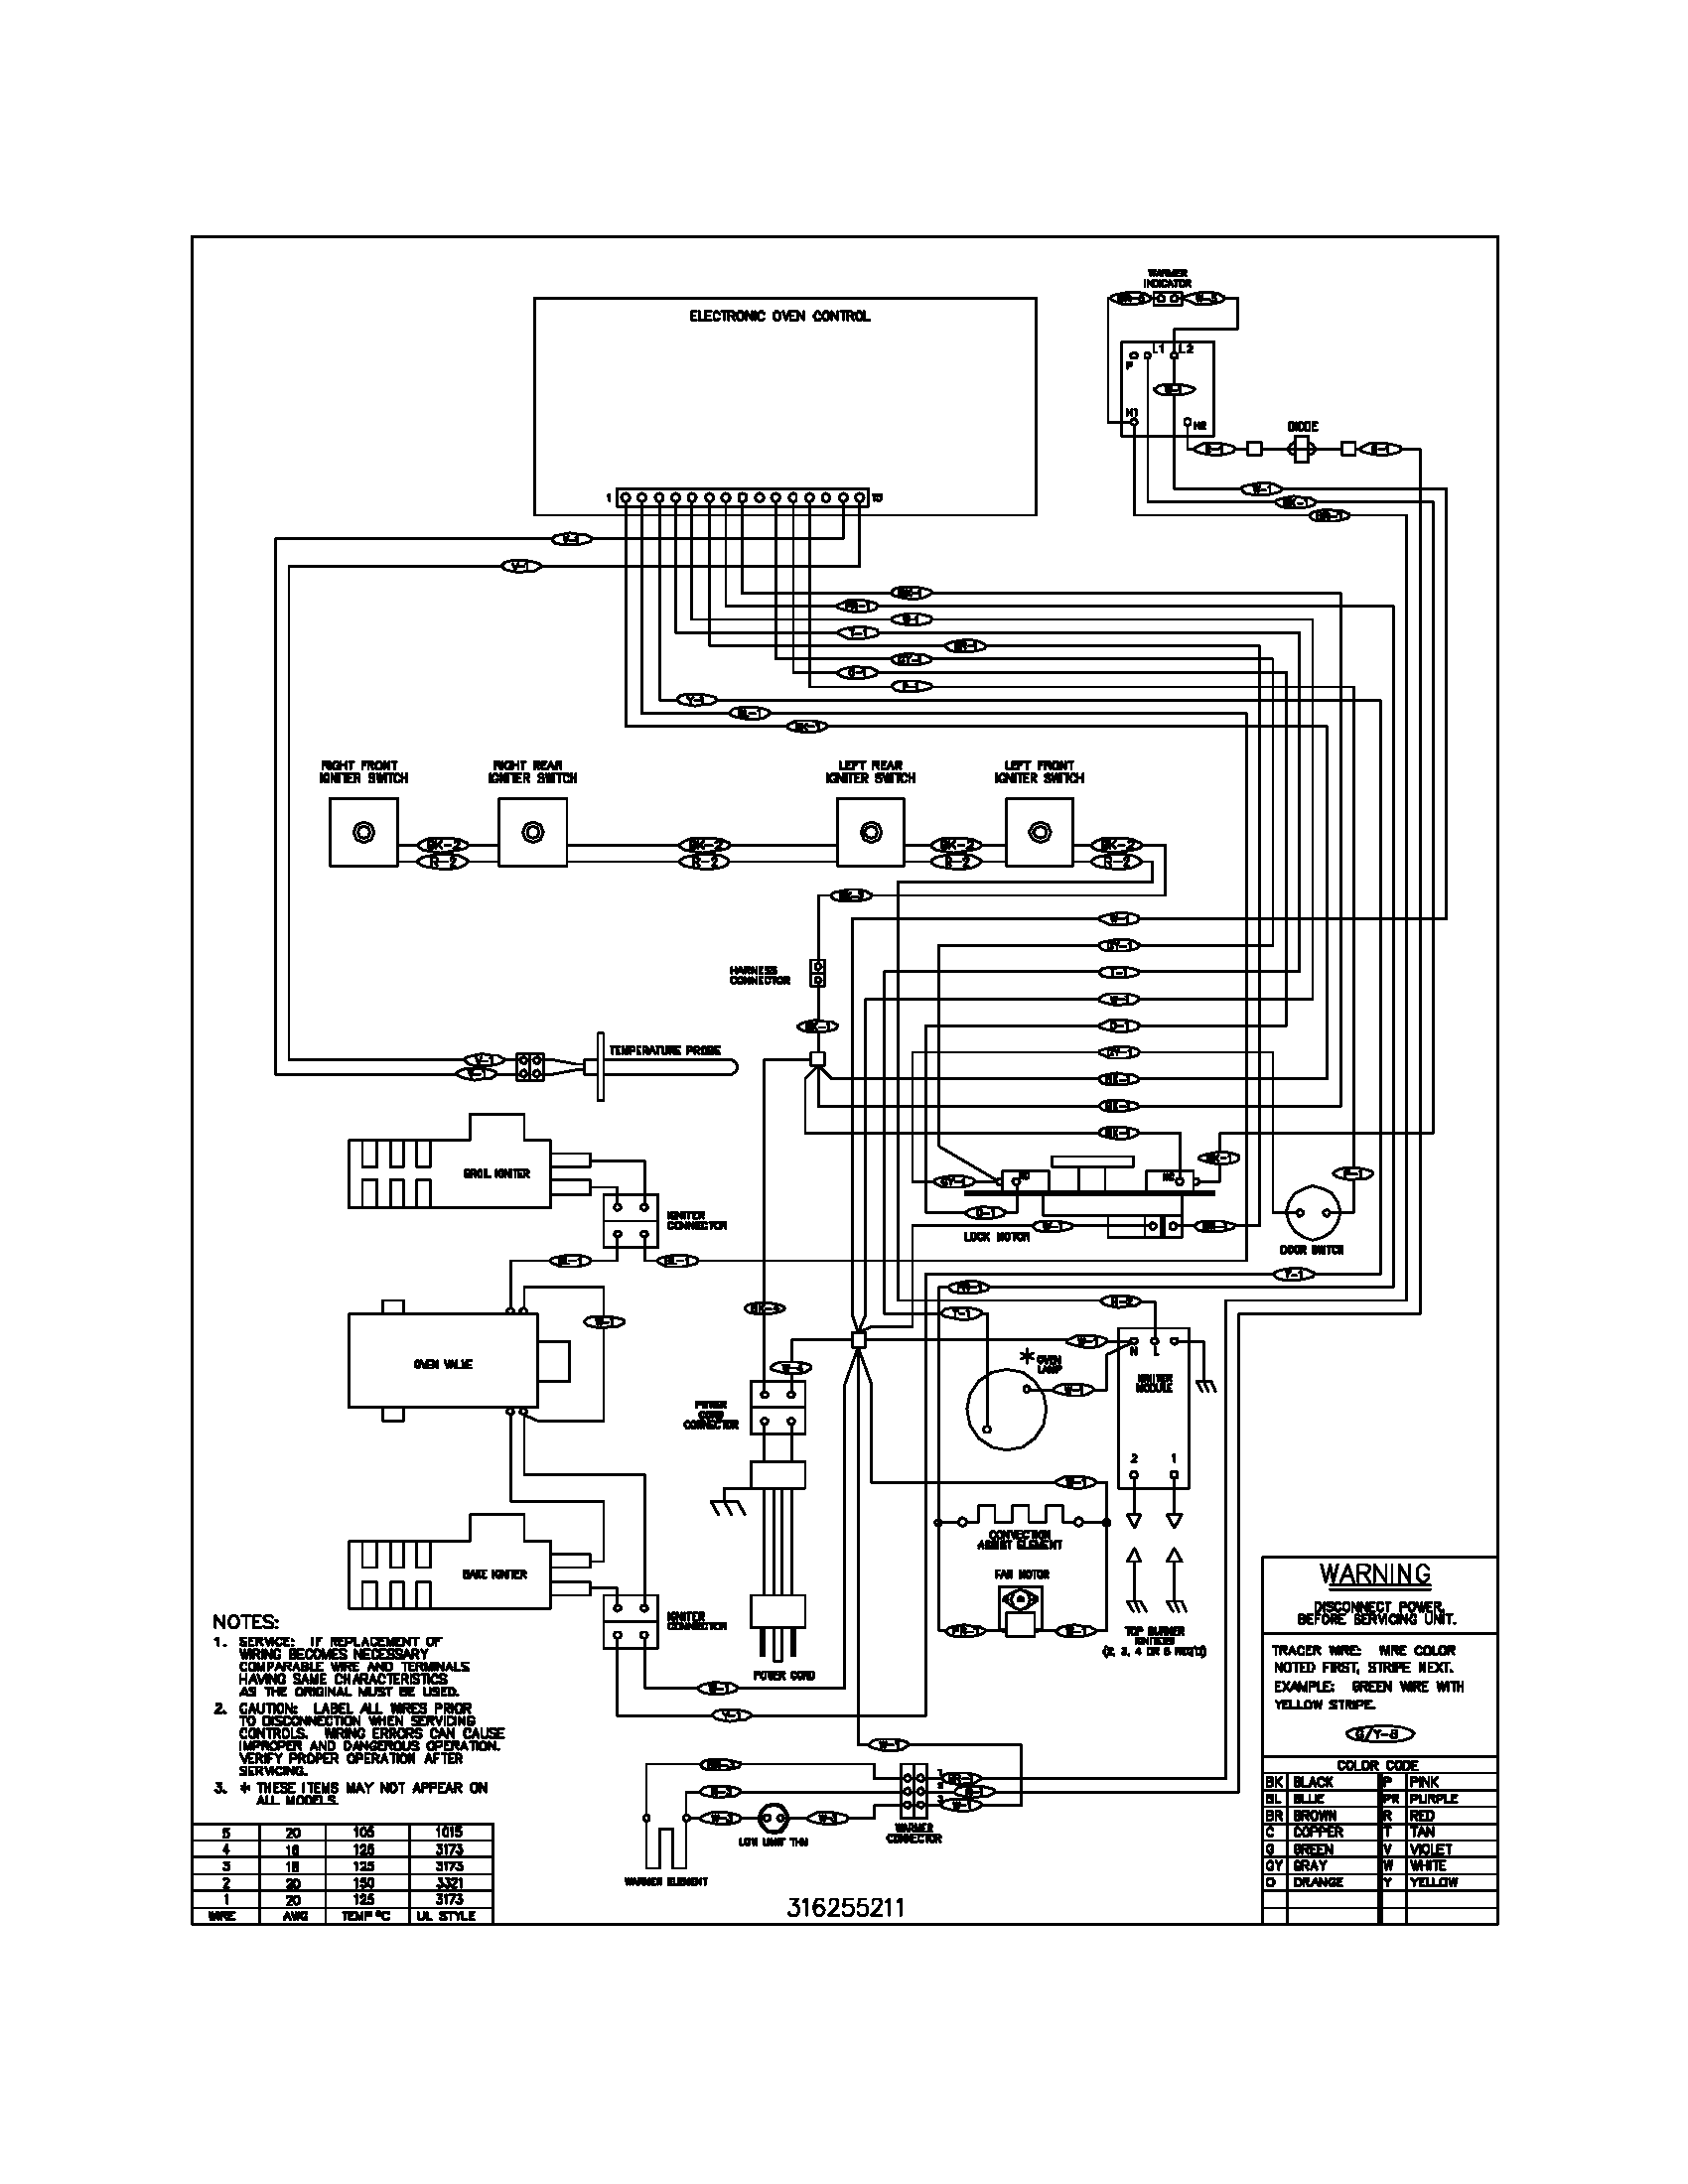 wiring diagram parts electrolux wiring diagram electrolux dishwasher service manual Basic Electrical Wiring Diagrams at gsmx.co